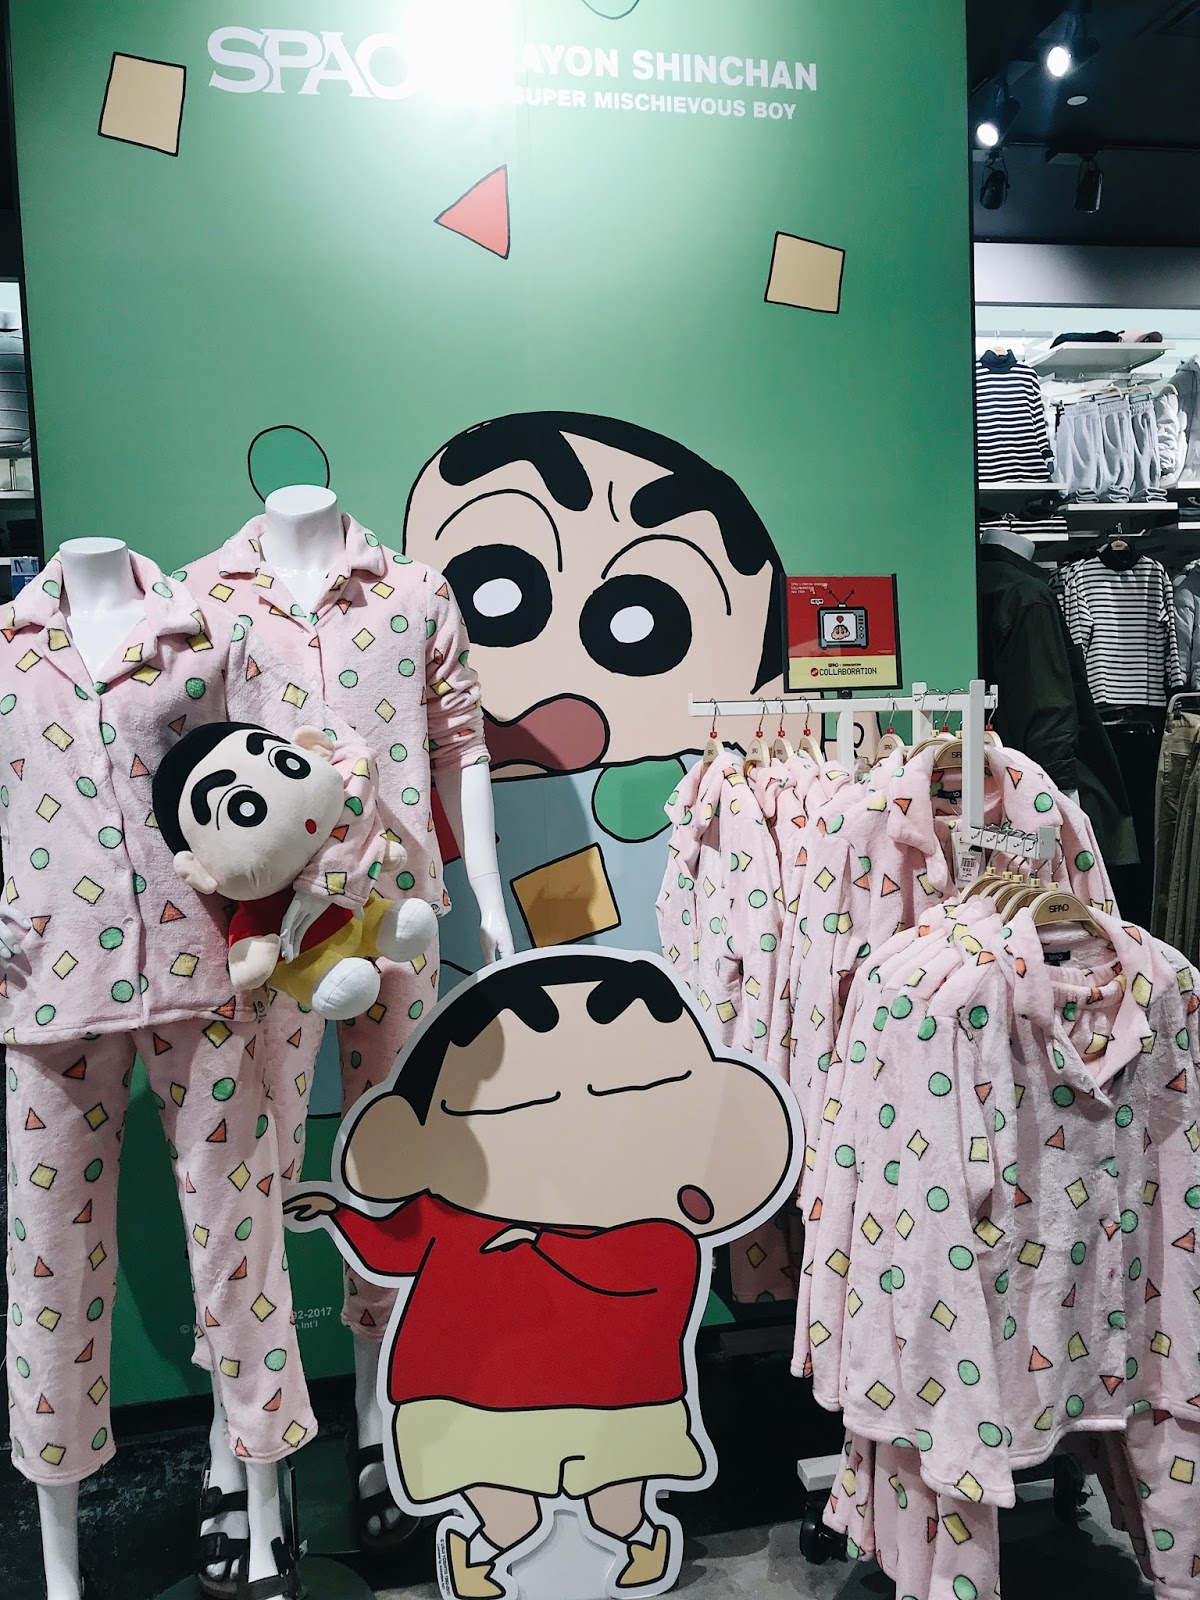 Crayon Shinchan is what everyone is up for now. 3e1e39bfafdf5